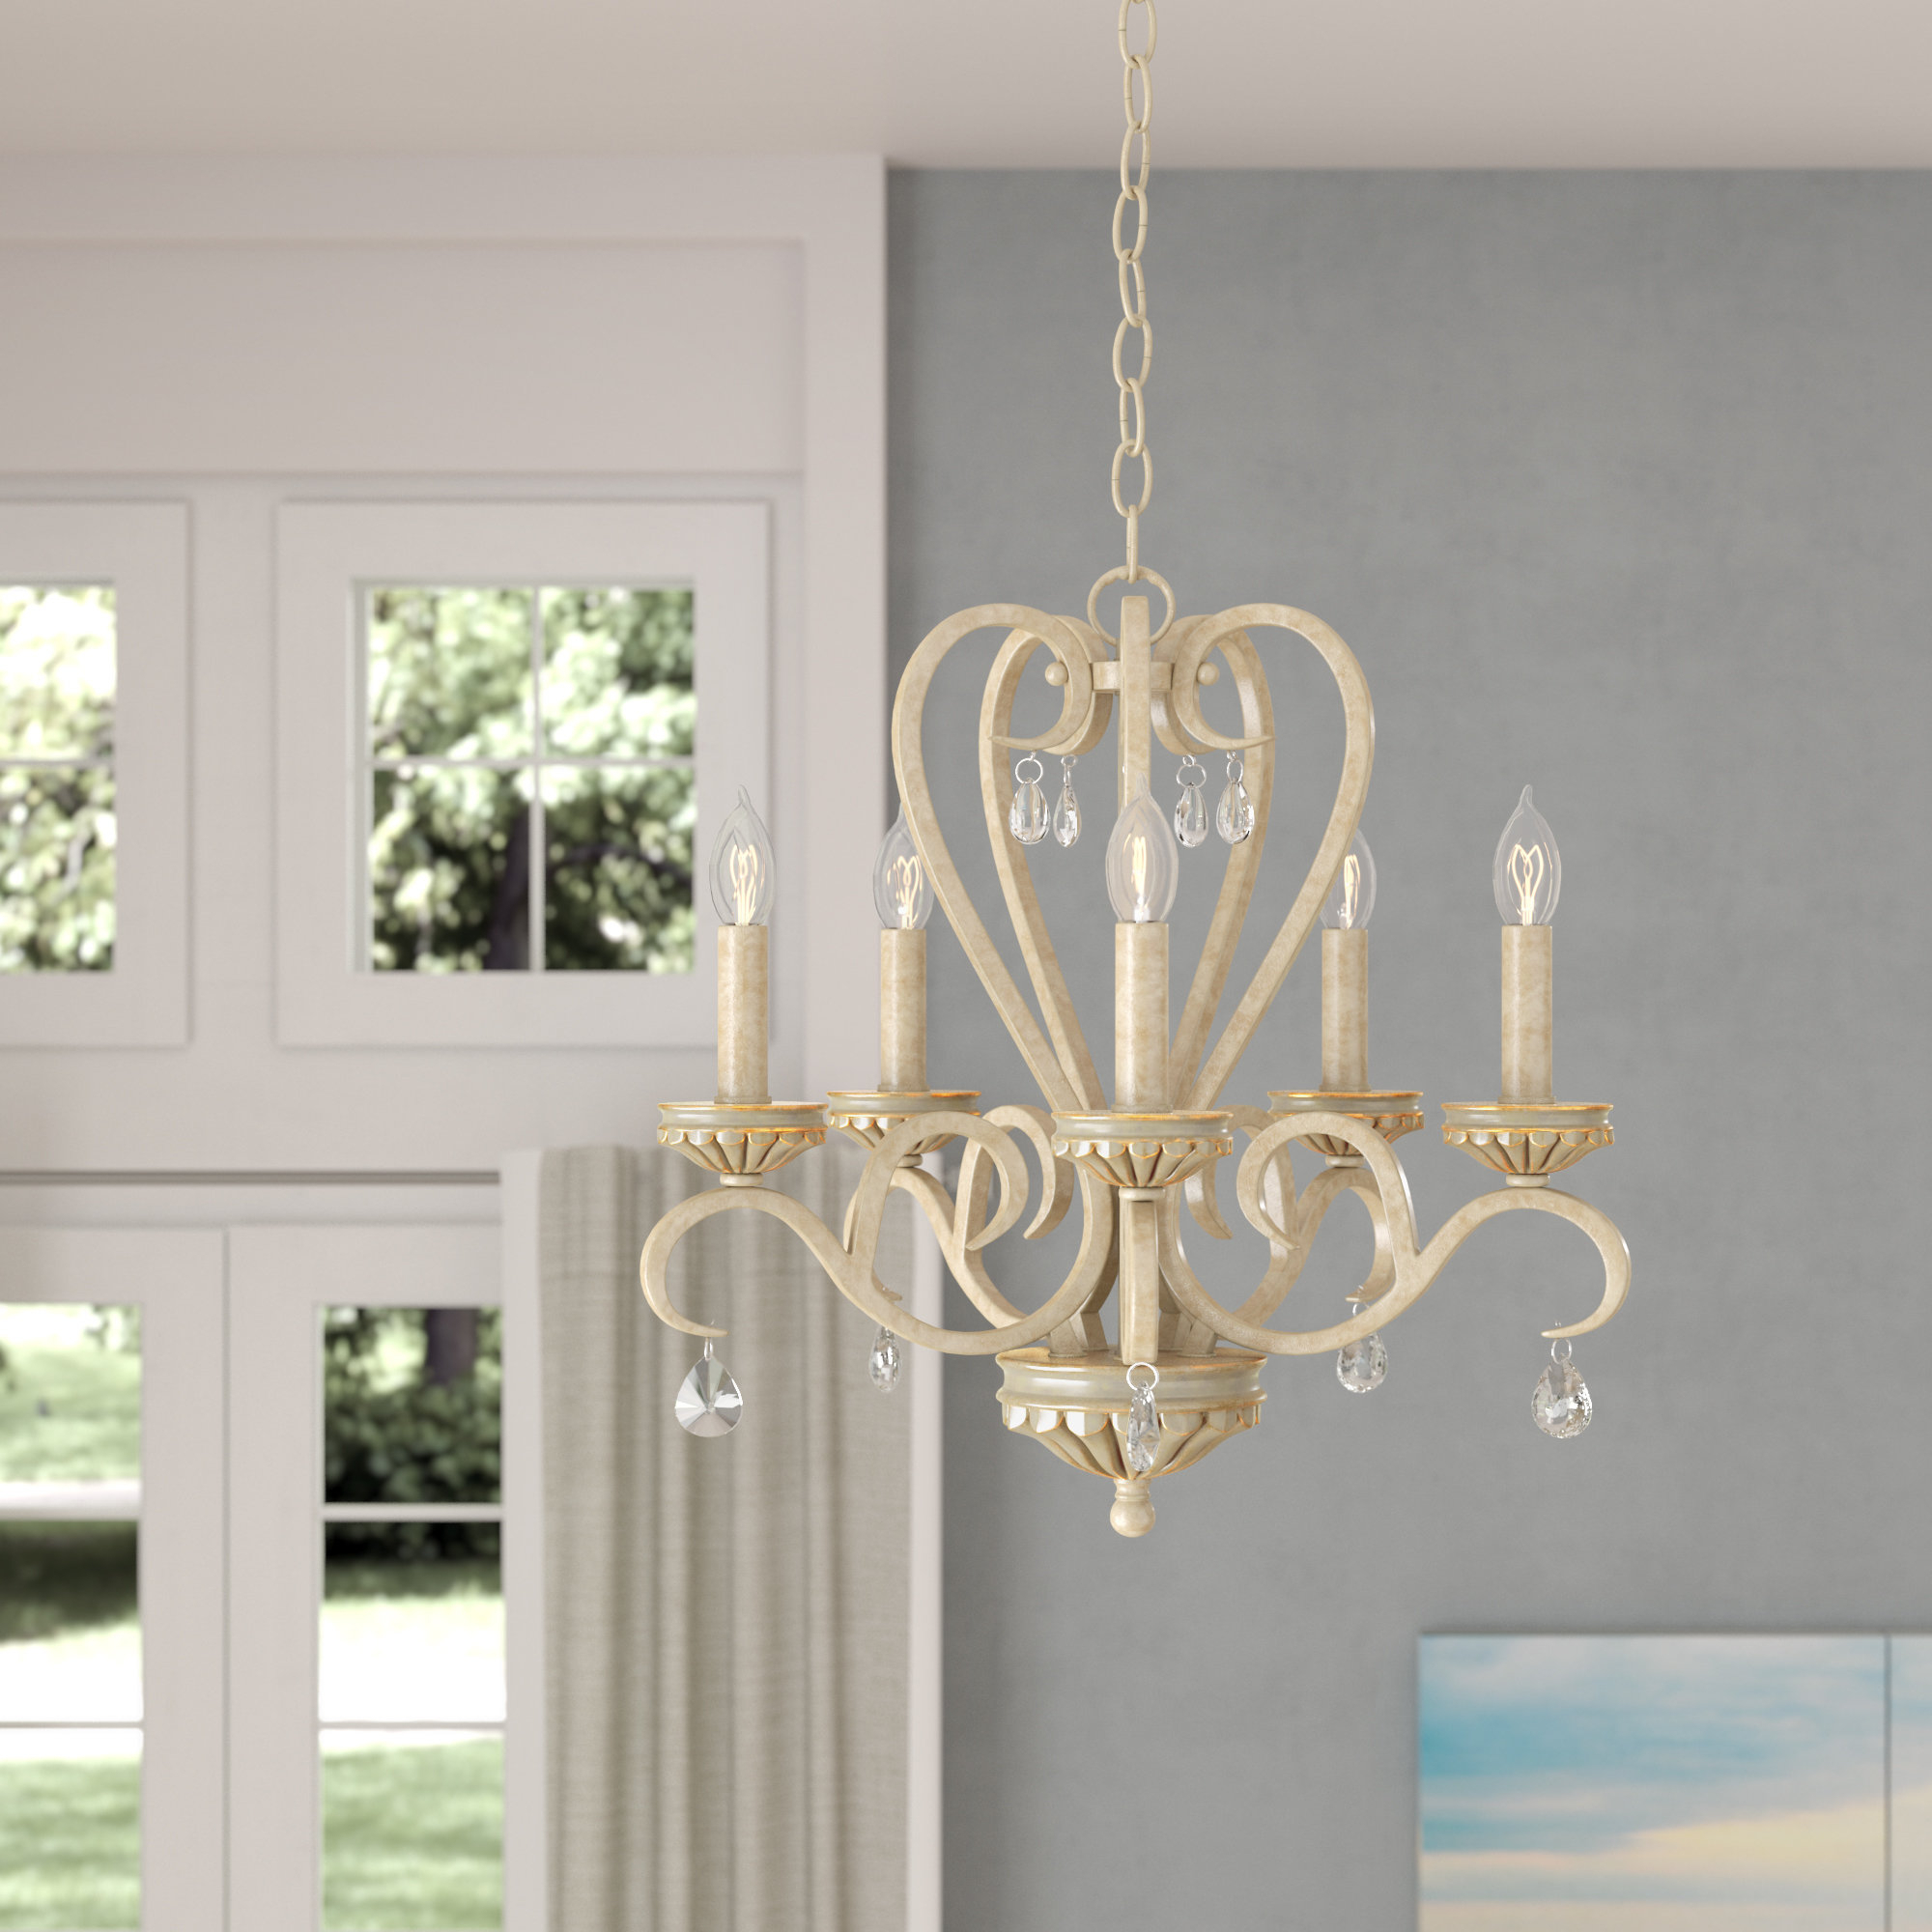 Khaled 5-Light Candle Style Chandelier intended for Oriana 4-Light Single Geometric Chandeliers (Image 16 of 30)